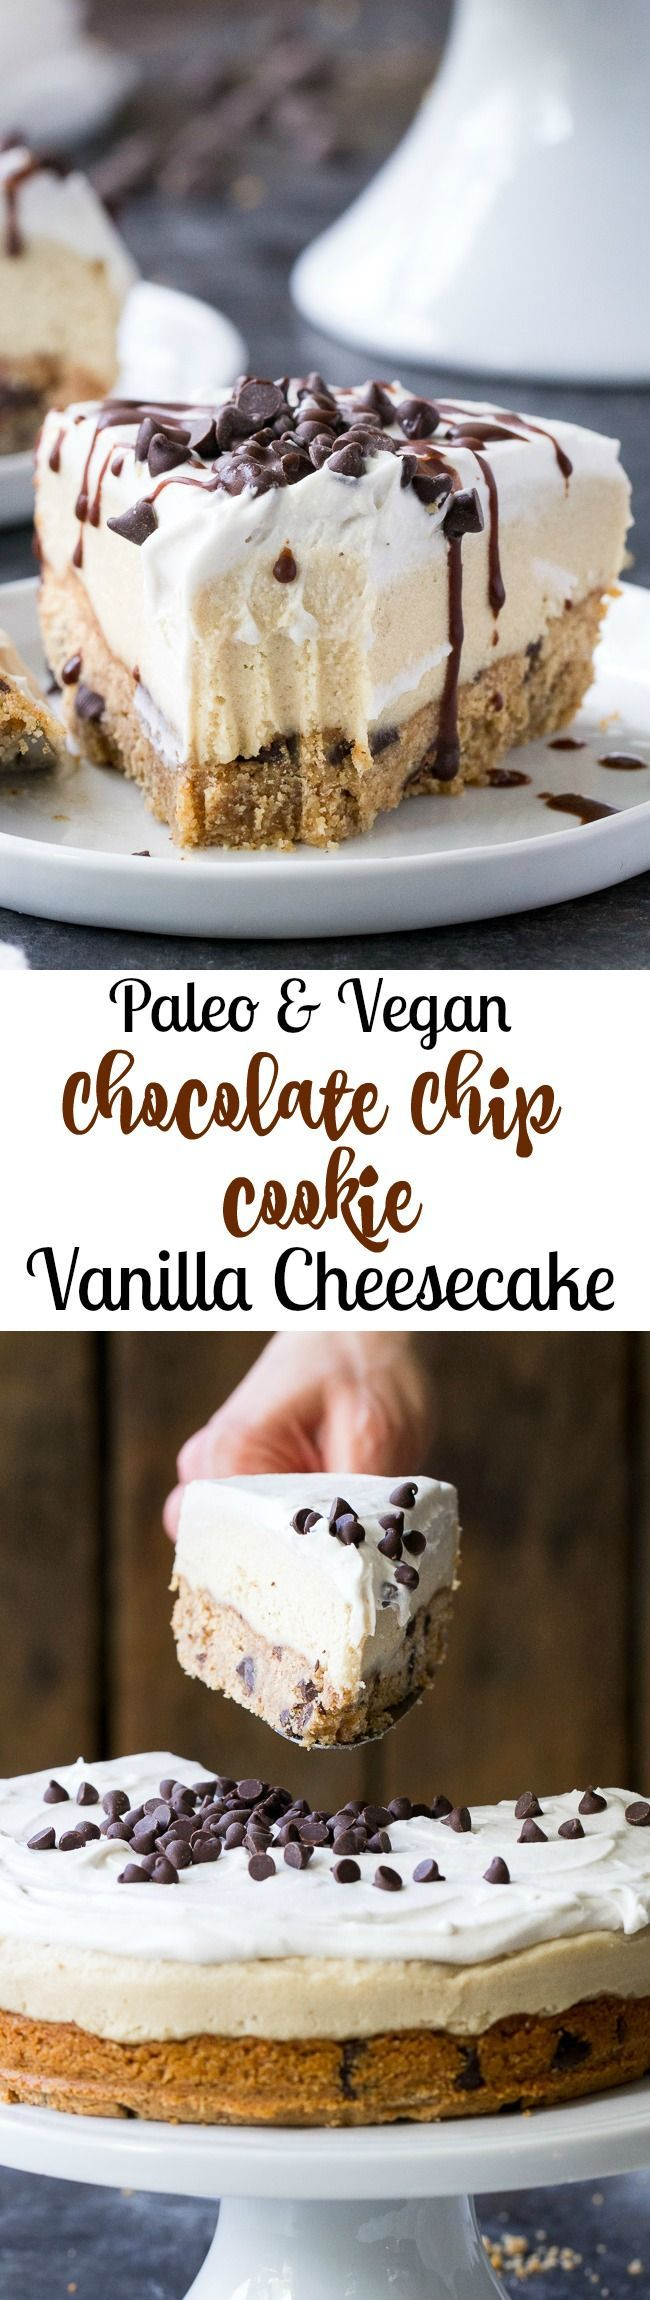 This chocolate chip cookie vanilla cheesecake starts with a thick chewy chocolate chip cookie layer topped with creamy cashew vanilla cheesecake, coconut whipped cream, more chocolate chips and a rich